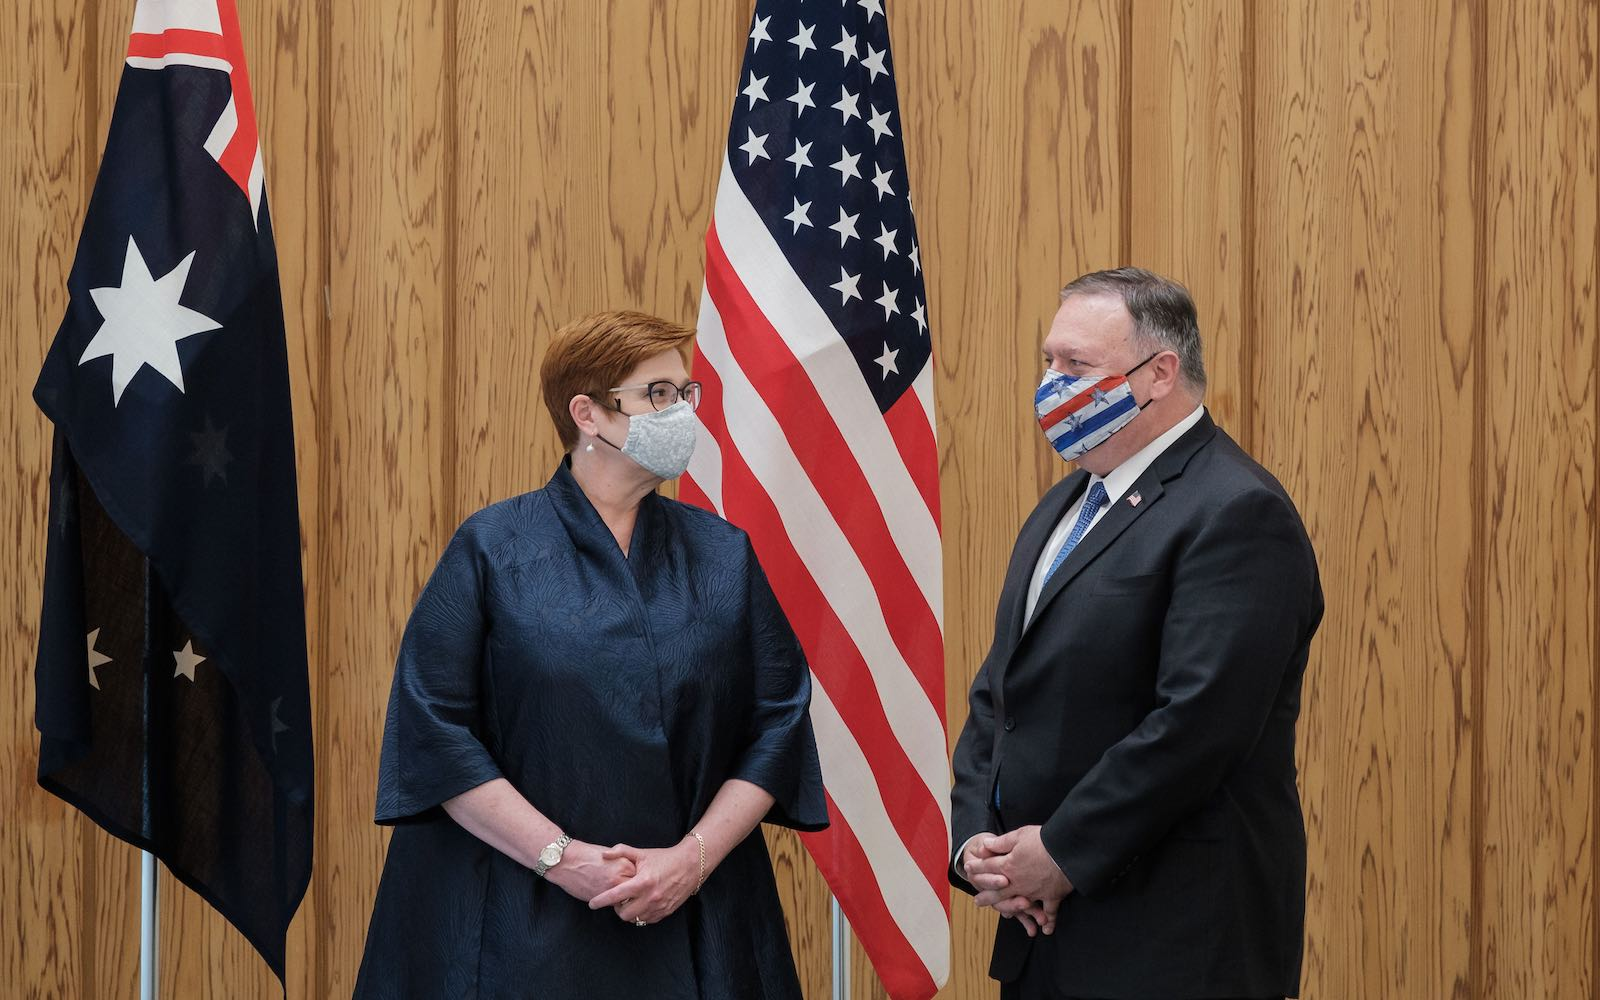 Foreign Minister Marise Payne (L) speaks with US Secretary of State Mike Pompeo during a Quad Indo-Pacific meeting in Tokyo, 6 October 2020 (Nicolas Datiche/Pool/AFP via Getty Images)